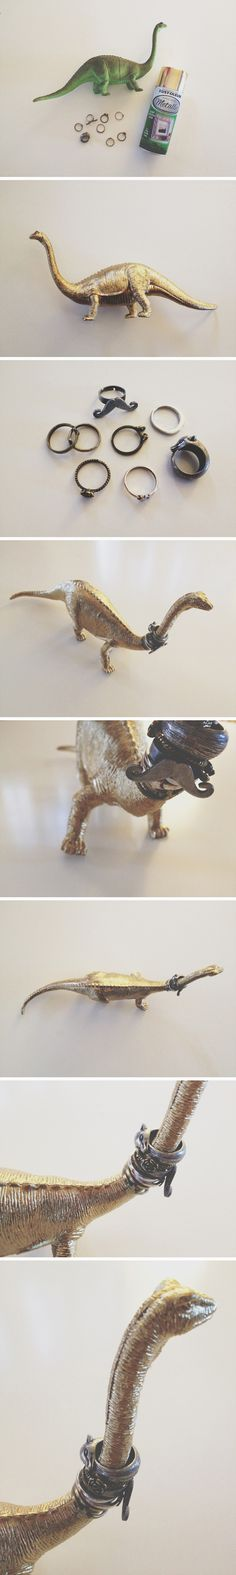 diy dinosaur ring holder - gold spray paint - walk in love